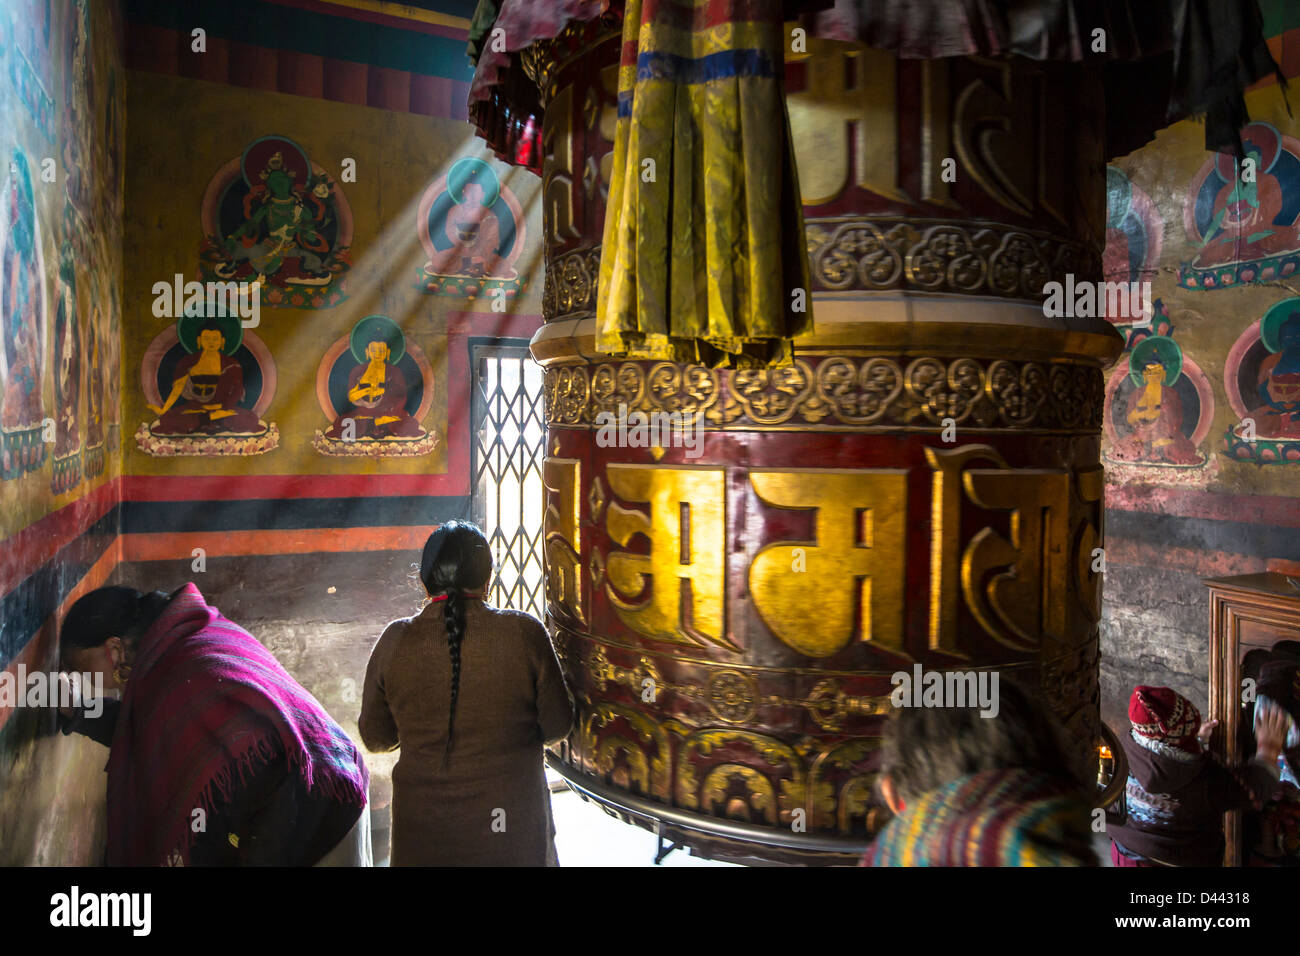 Prayer wheel at Bodhanath Stupa, Kathmandu, Nepal - Stock Image